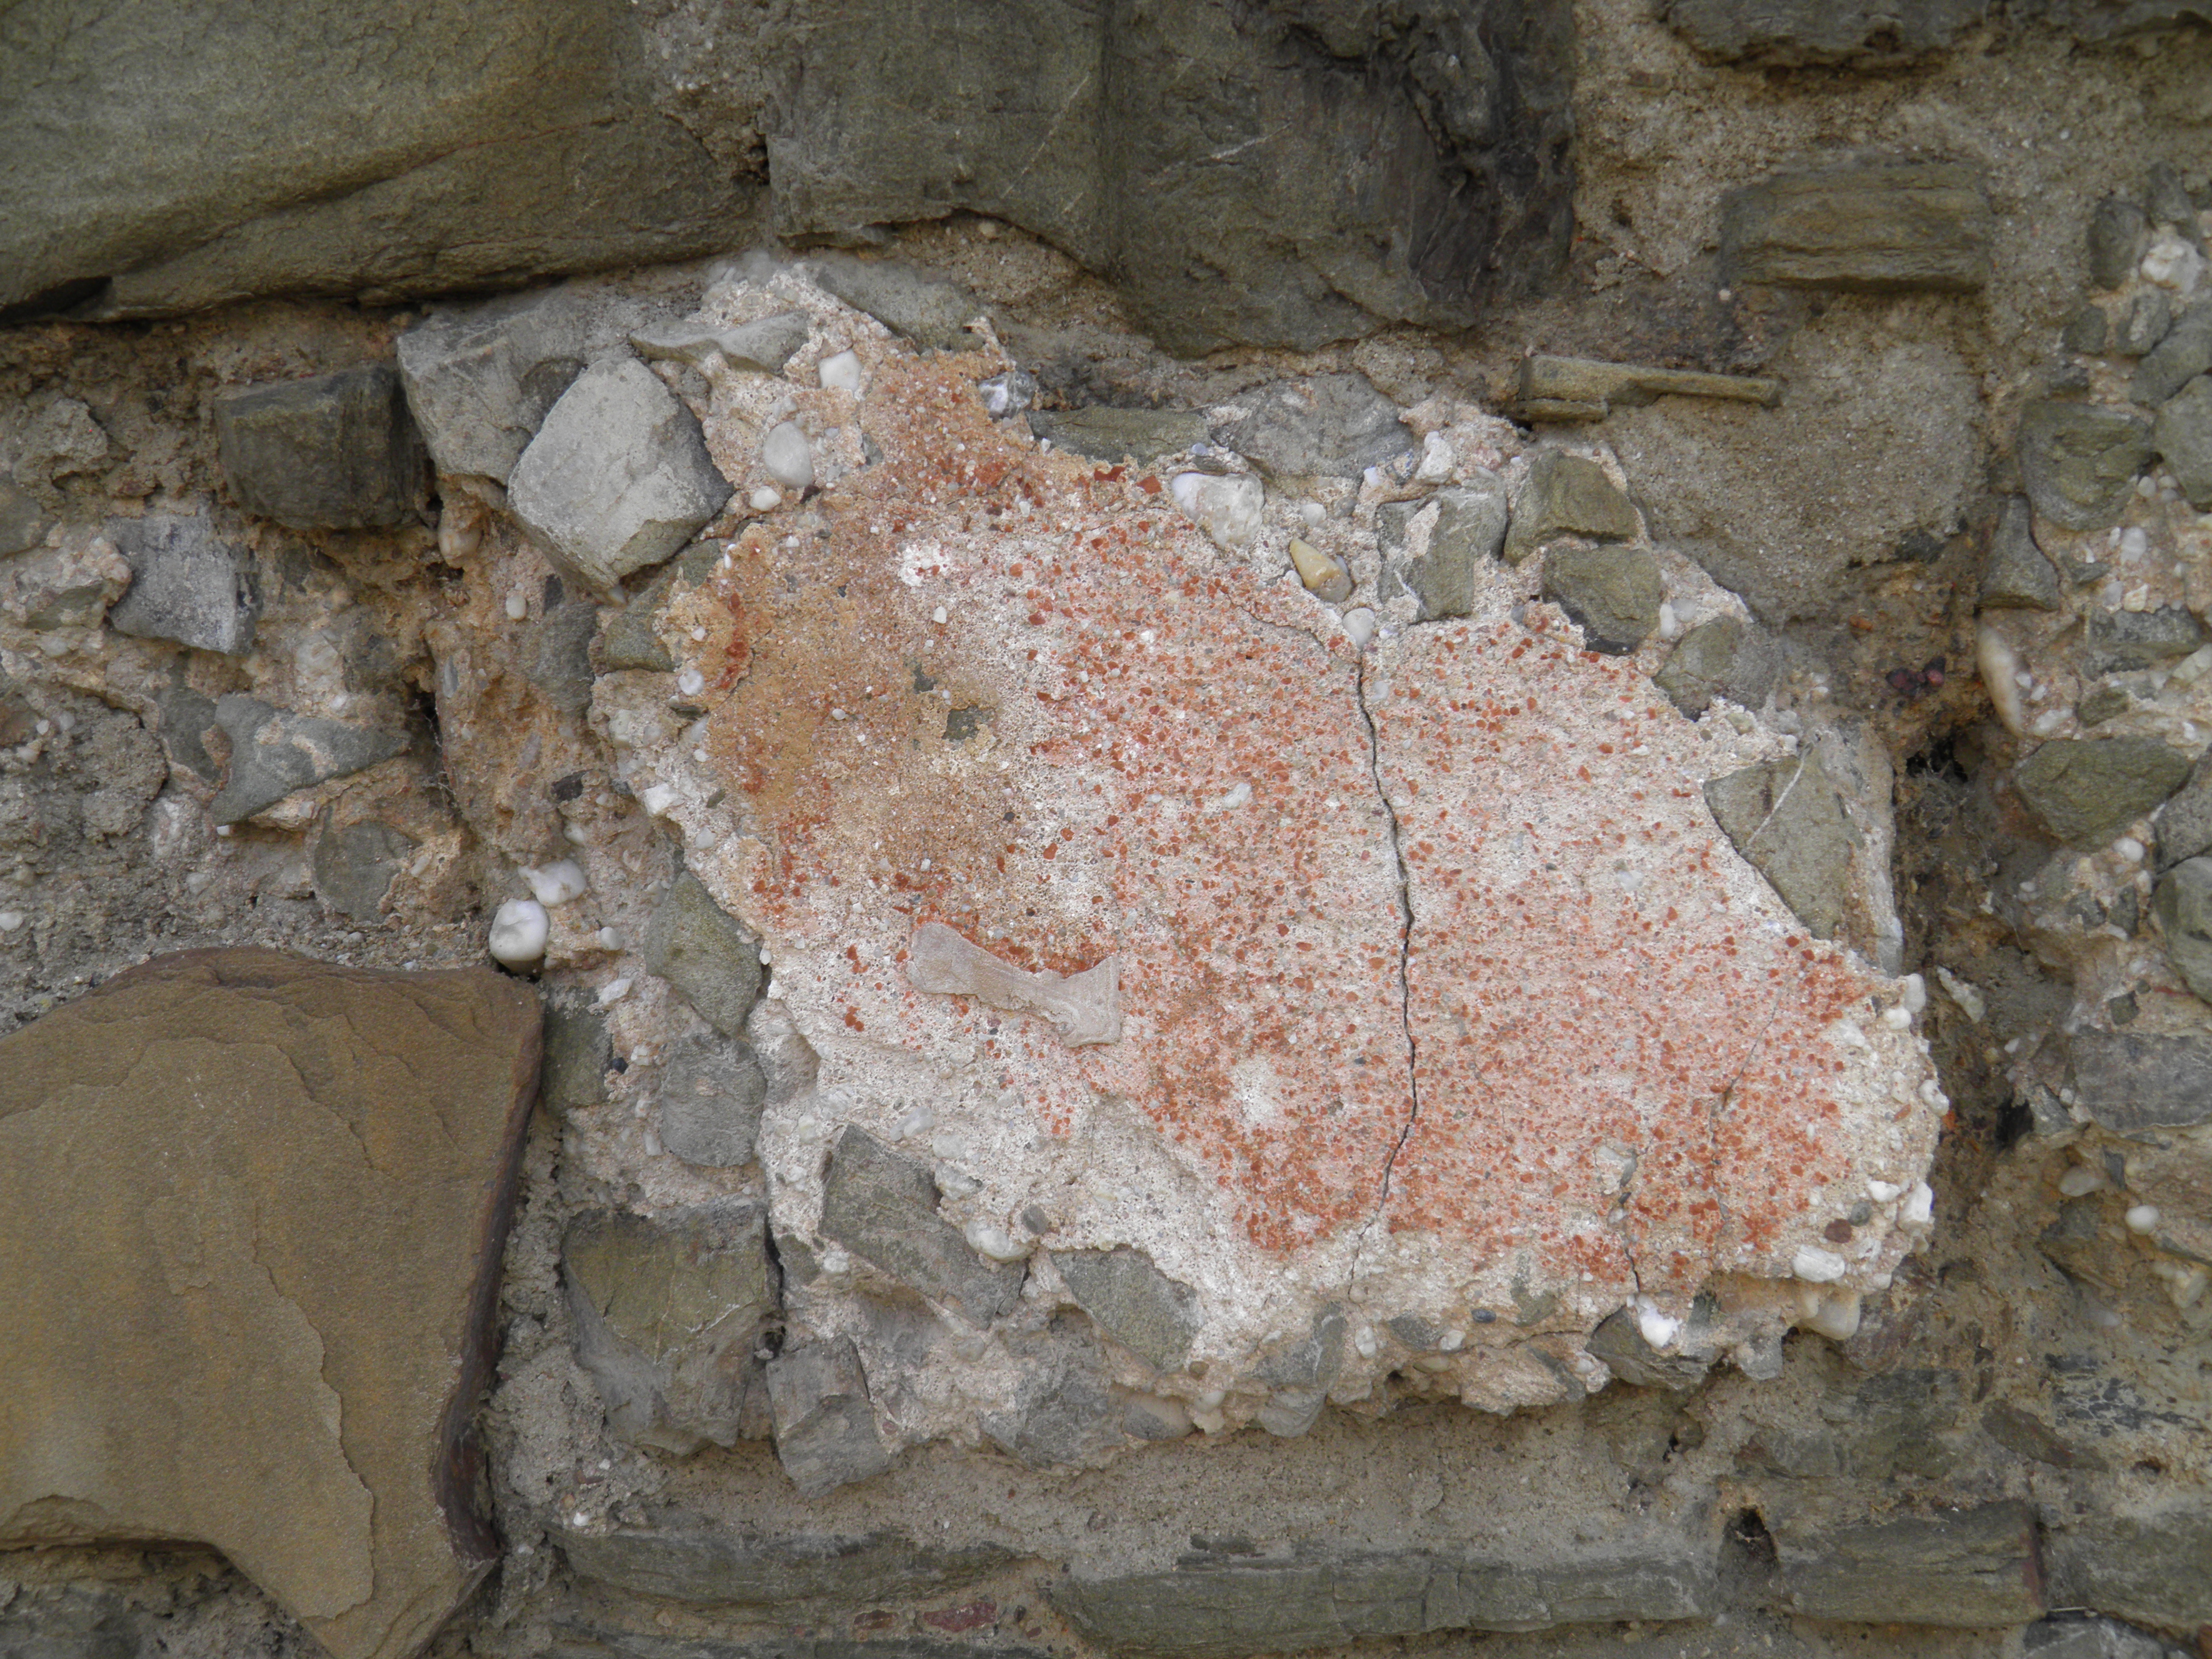 File Roman Concrete With Reddish Plaster In The Wall At